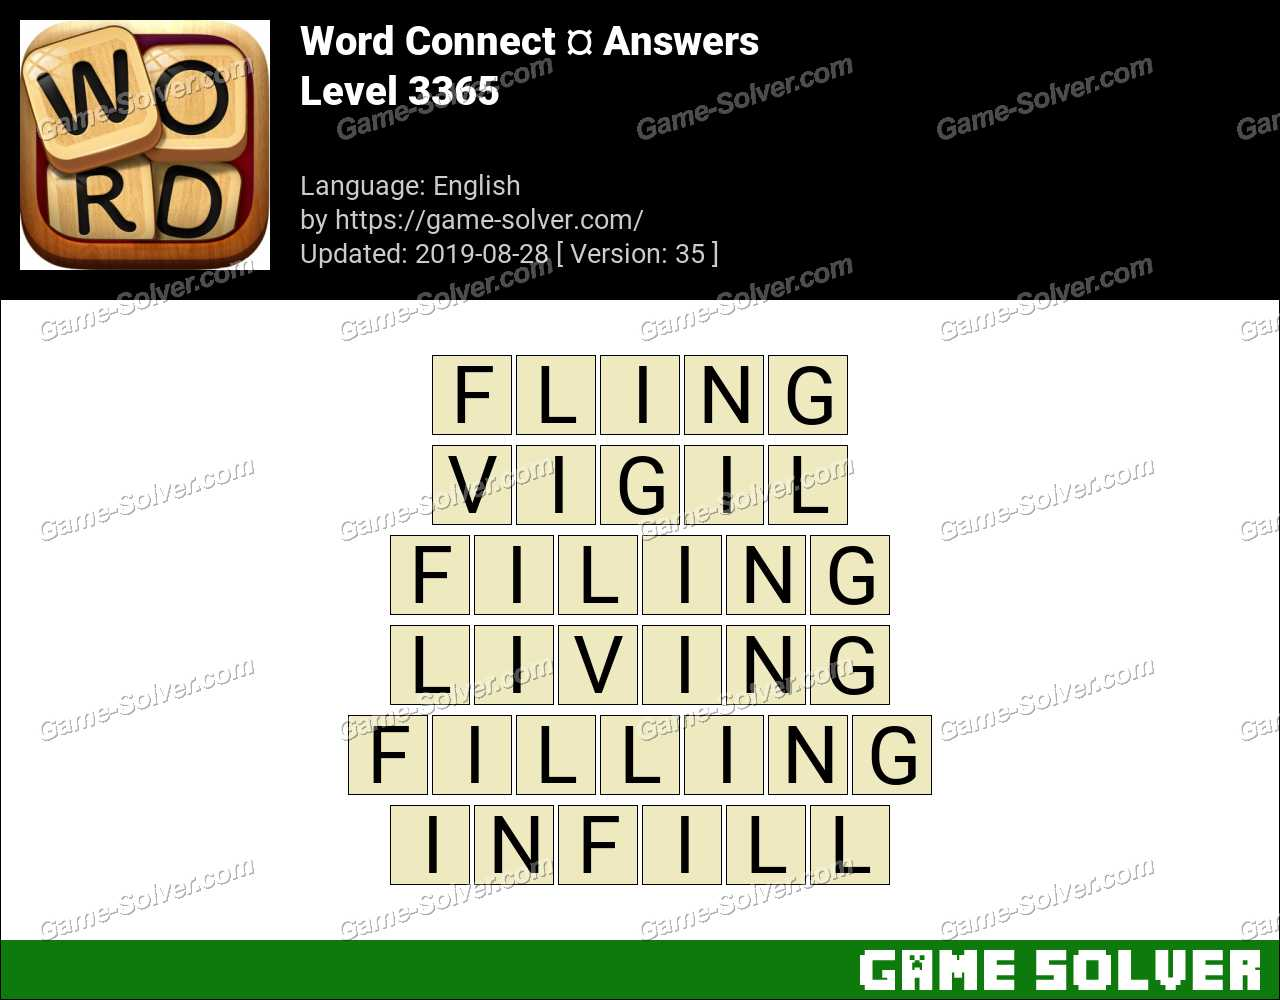 Word Connect Level 3365 Answers